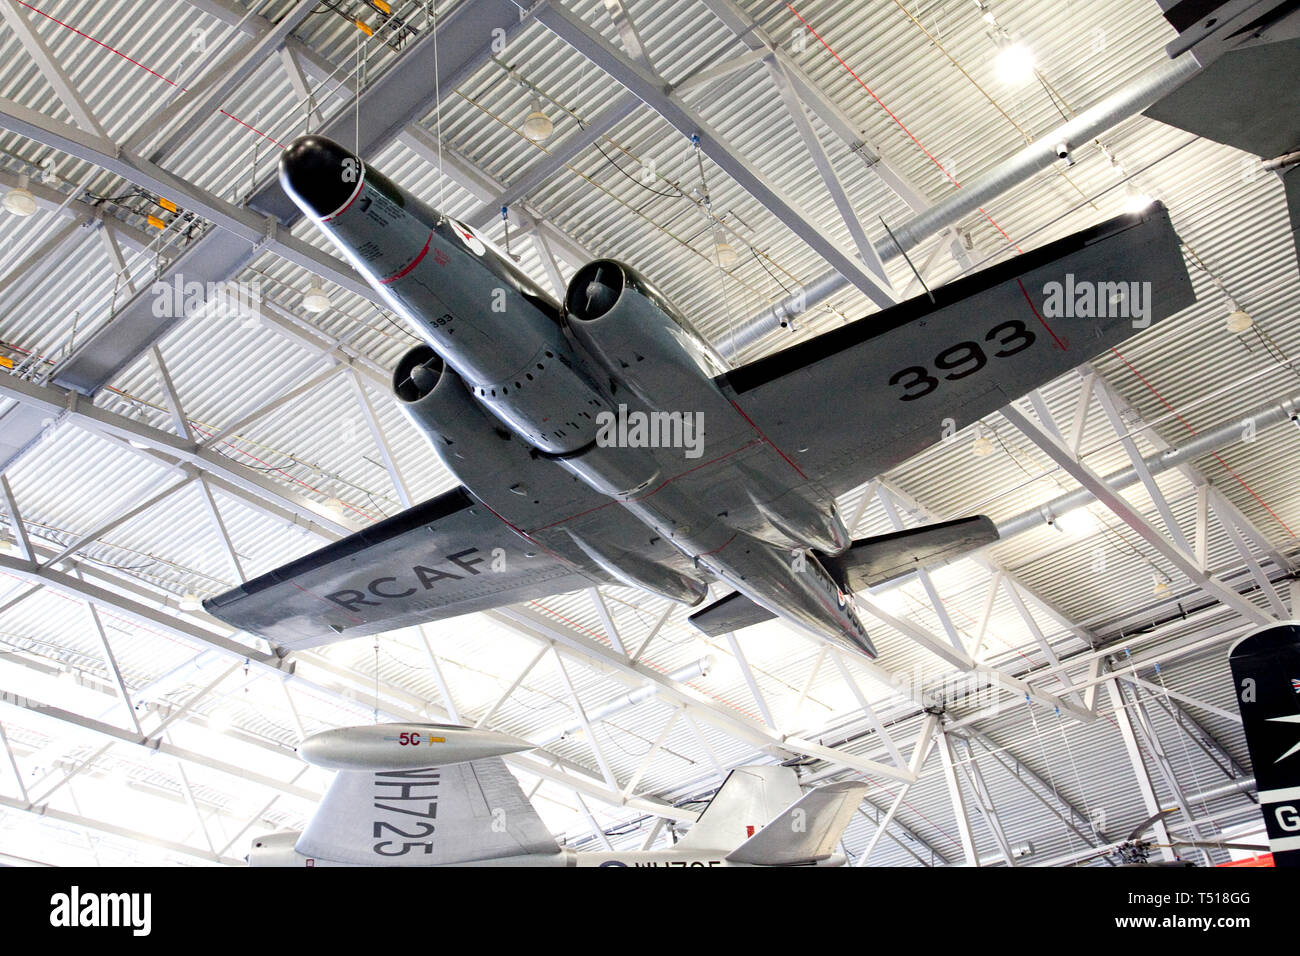 Avro Canada CF-100 Canuck in the American Air Museum at Duxford Imperial War Museum,Cambridgeshire, England. - Stock Image